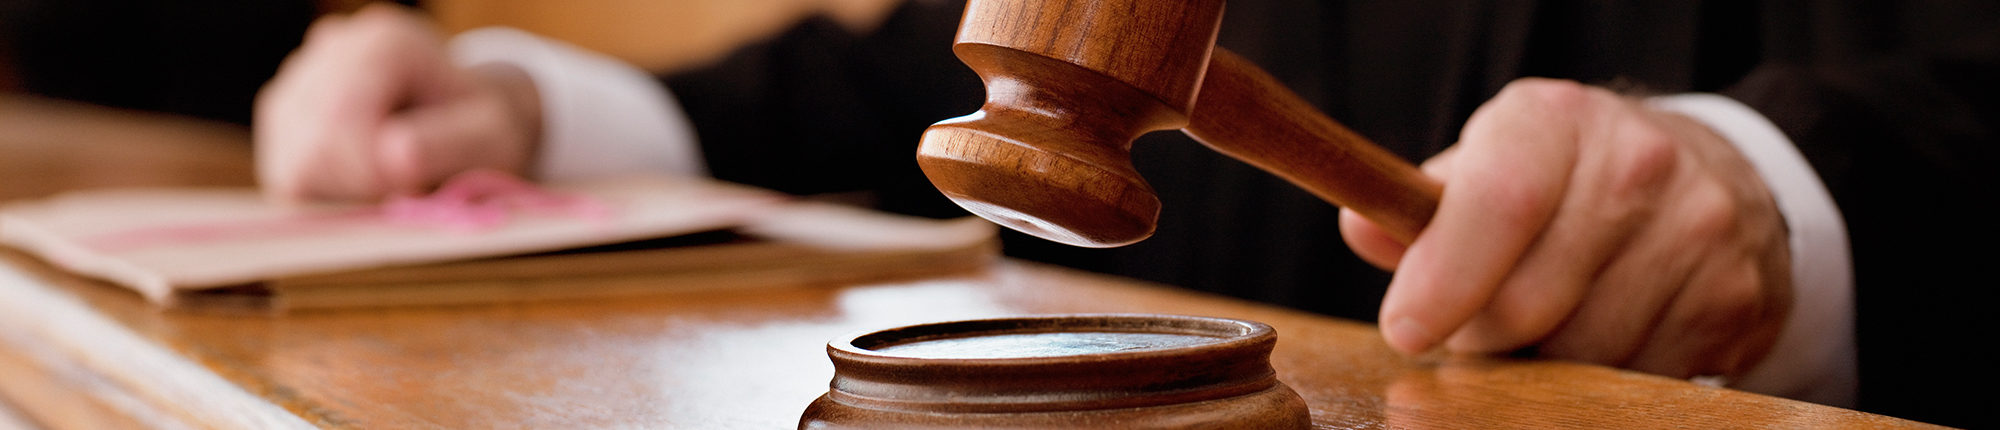 judge holding the gavel in a court room